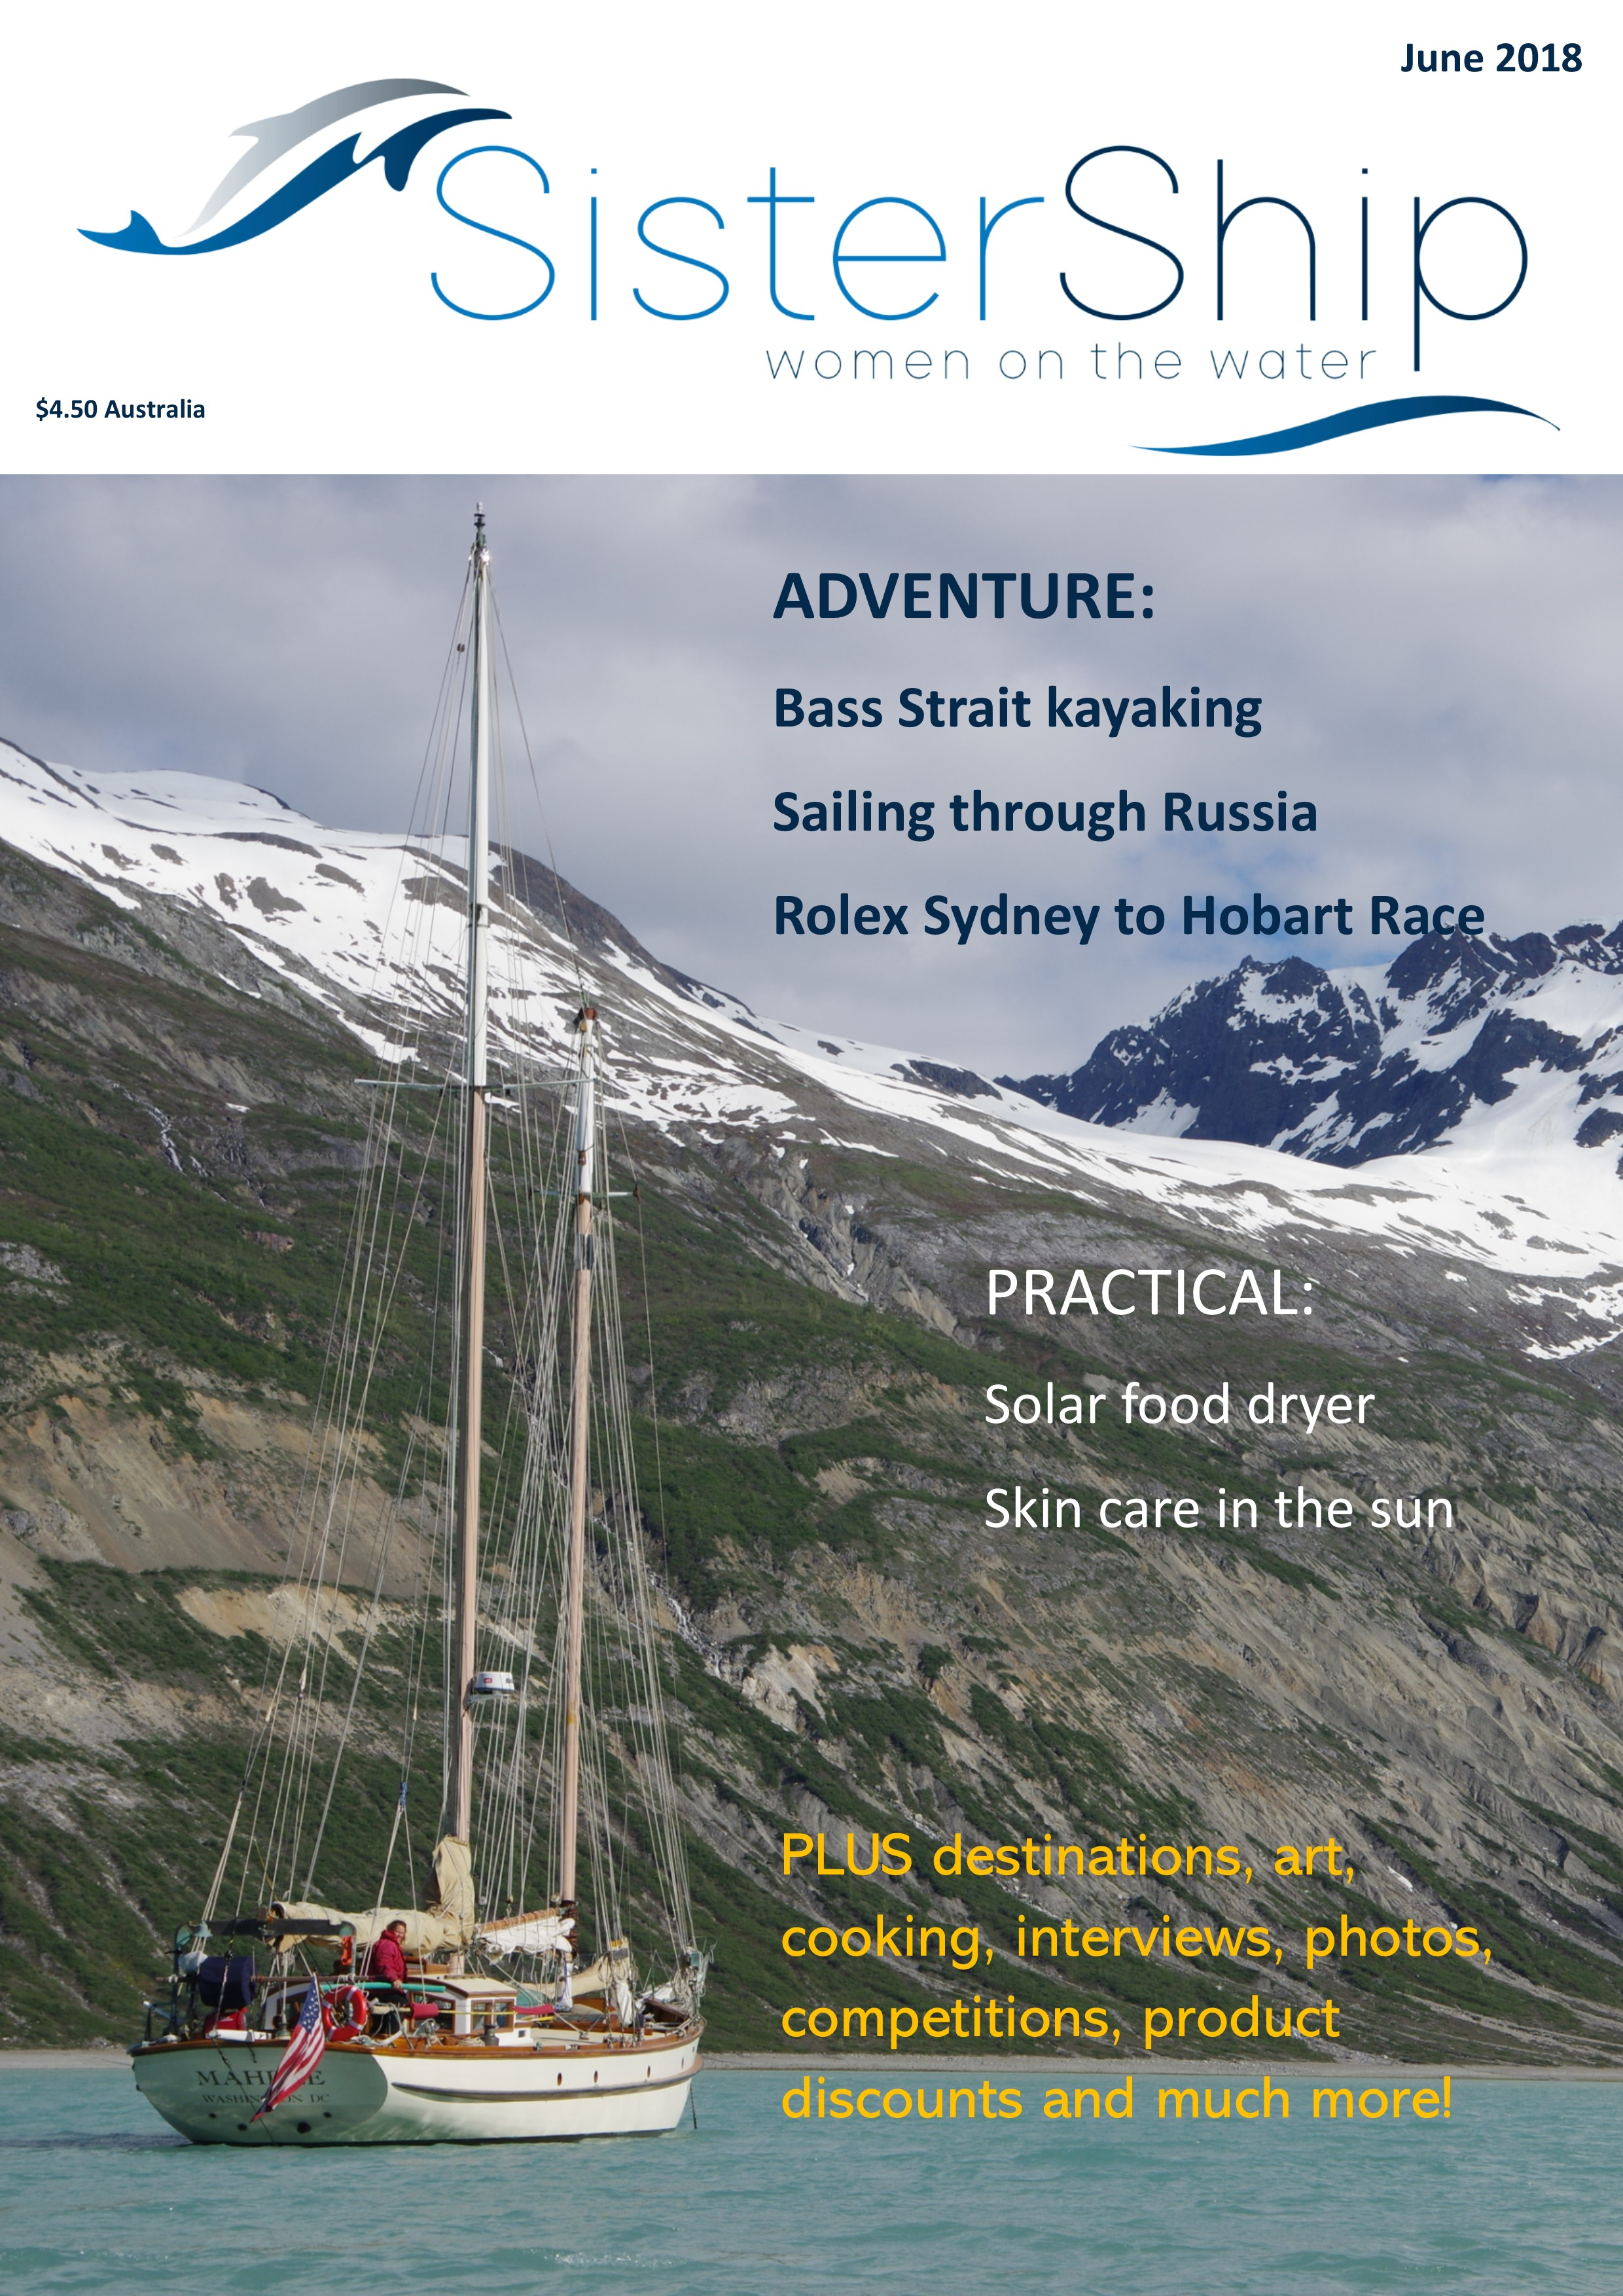 Jackie Parry Author Parts Of A Tall Ship For Pinterest Sistership Women On The Water